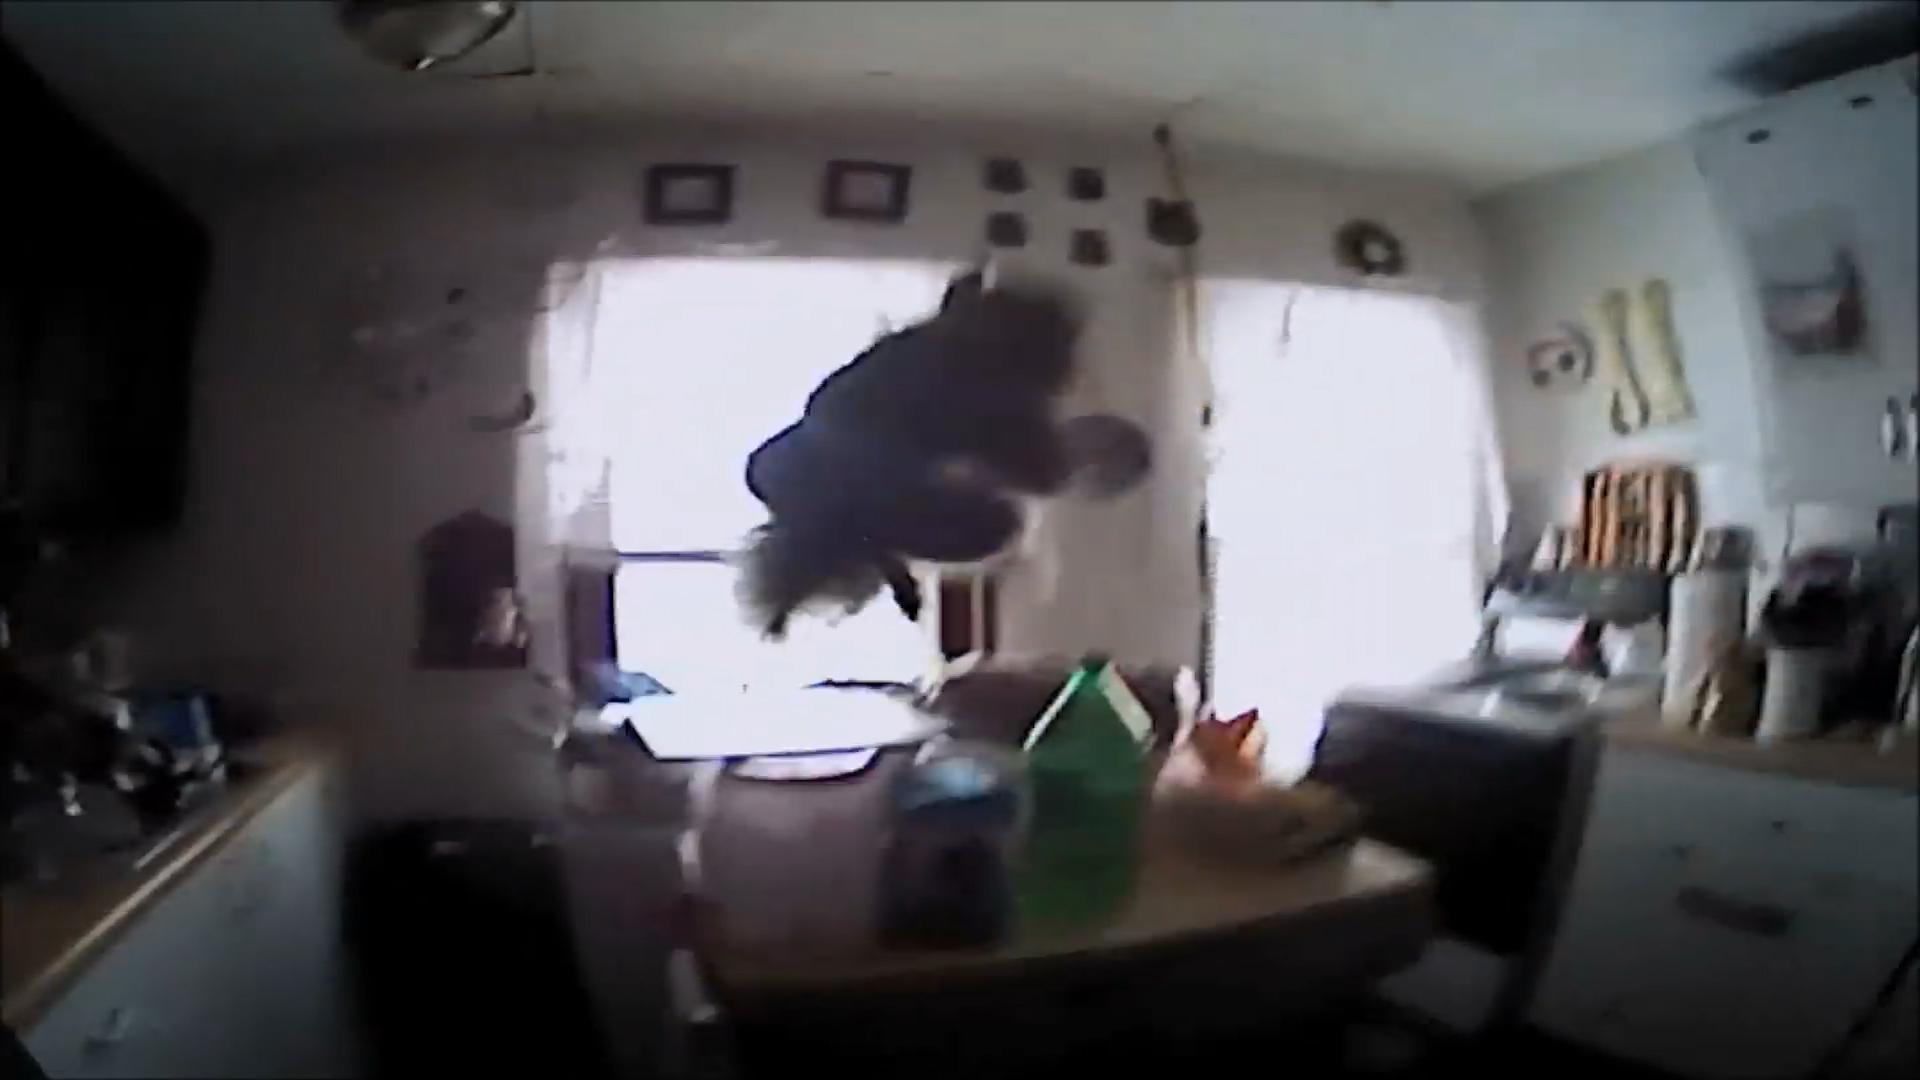 Squirrel lunges at police officer inside home